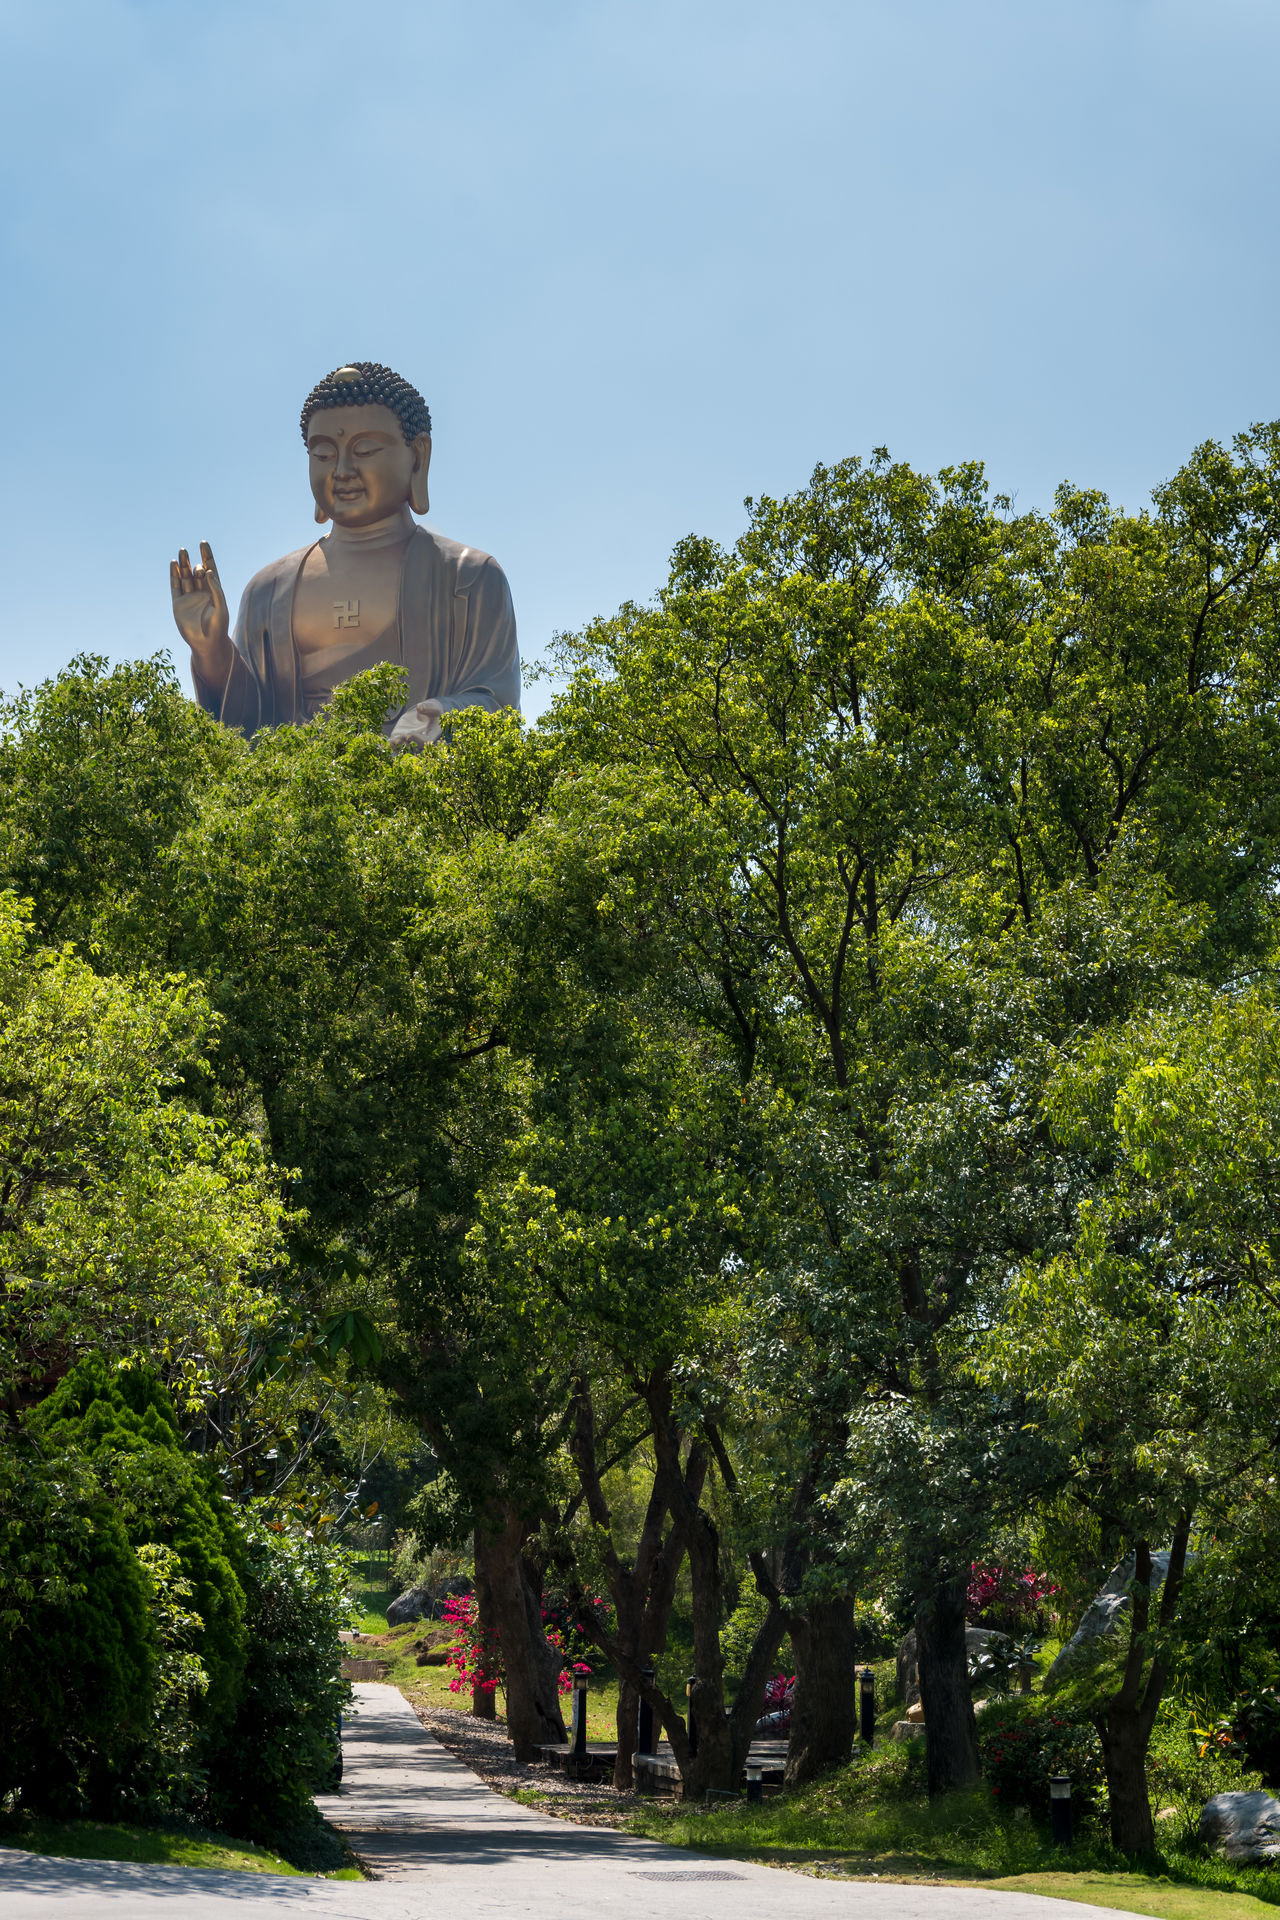 Big Buddha above trees and pathway at the Fo Guang Shan Monastery in Kaohsiung, Taiwan. BIG Big Buddha Buddha Buddhism Buddhist Chinese Culture Day Fo Guang Shan Huge Large Meditation Monastery Monk  Nature Outdoors Path Sky Spirituality Statue Taiwan Temple Tradition Tree Zen